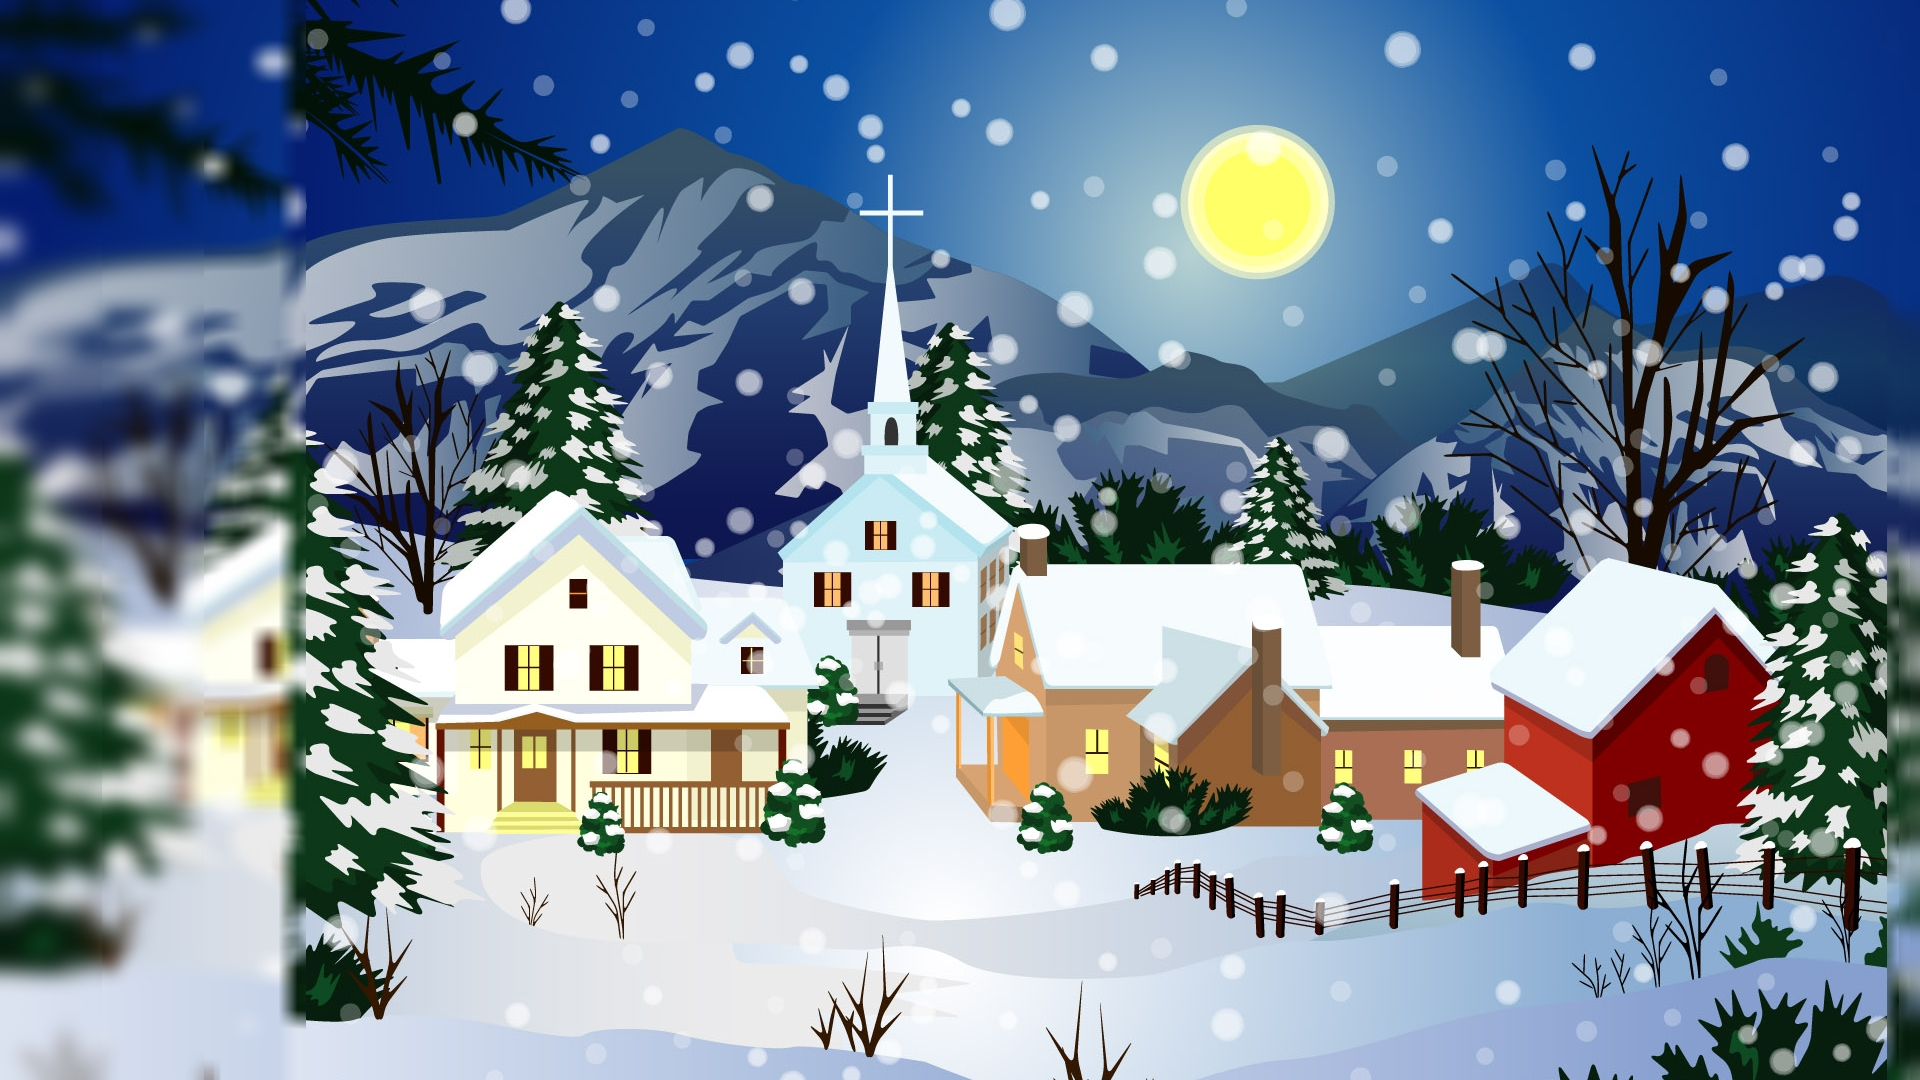 animated christmas wallpapers - sf wallpaper